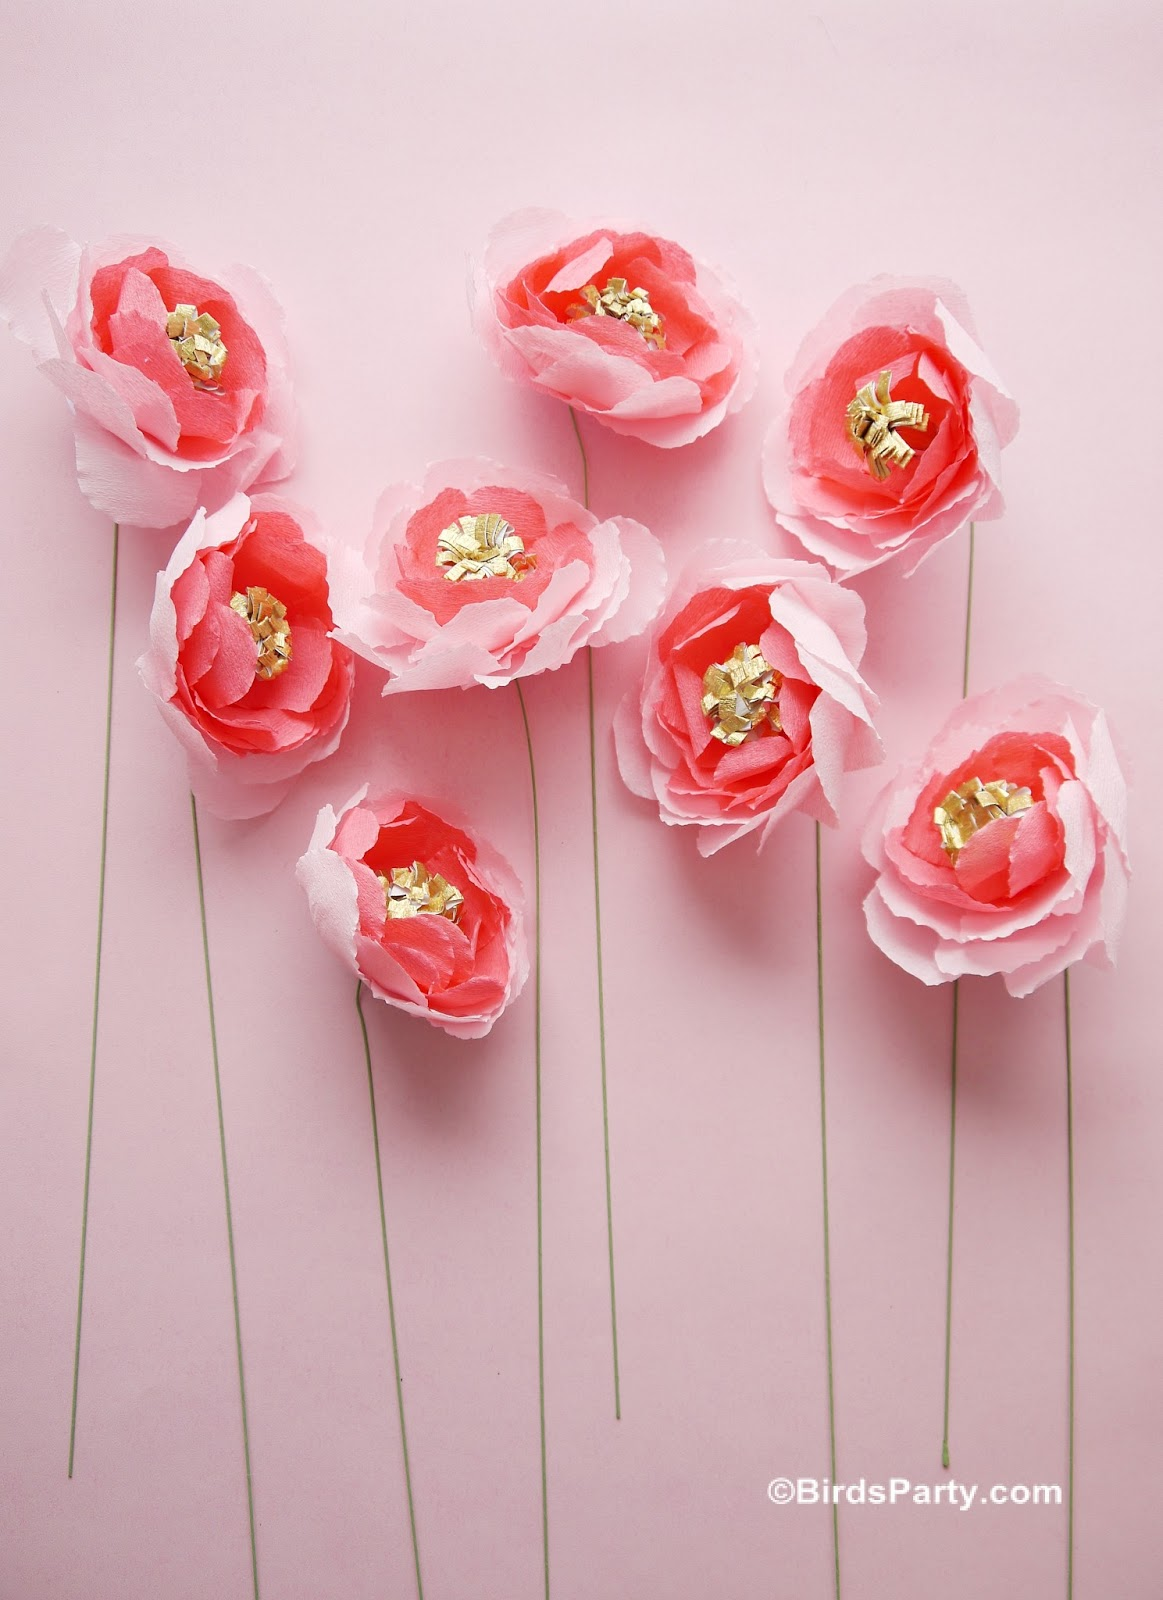 Diy crepe paper flowers bouquet party ideas party printables blog diy crepe paper flowers bouquet izmirmasajfo